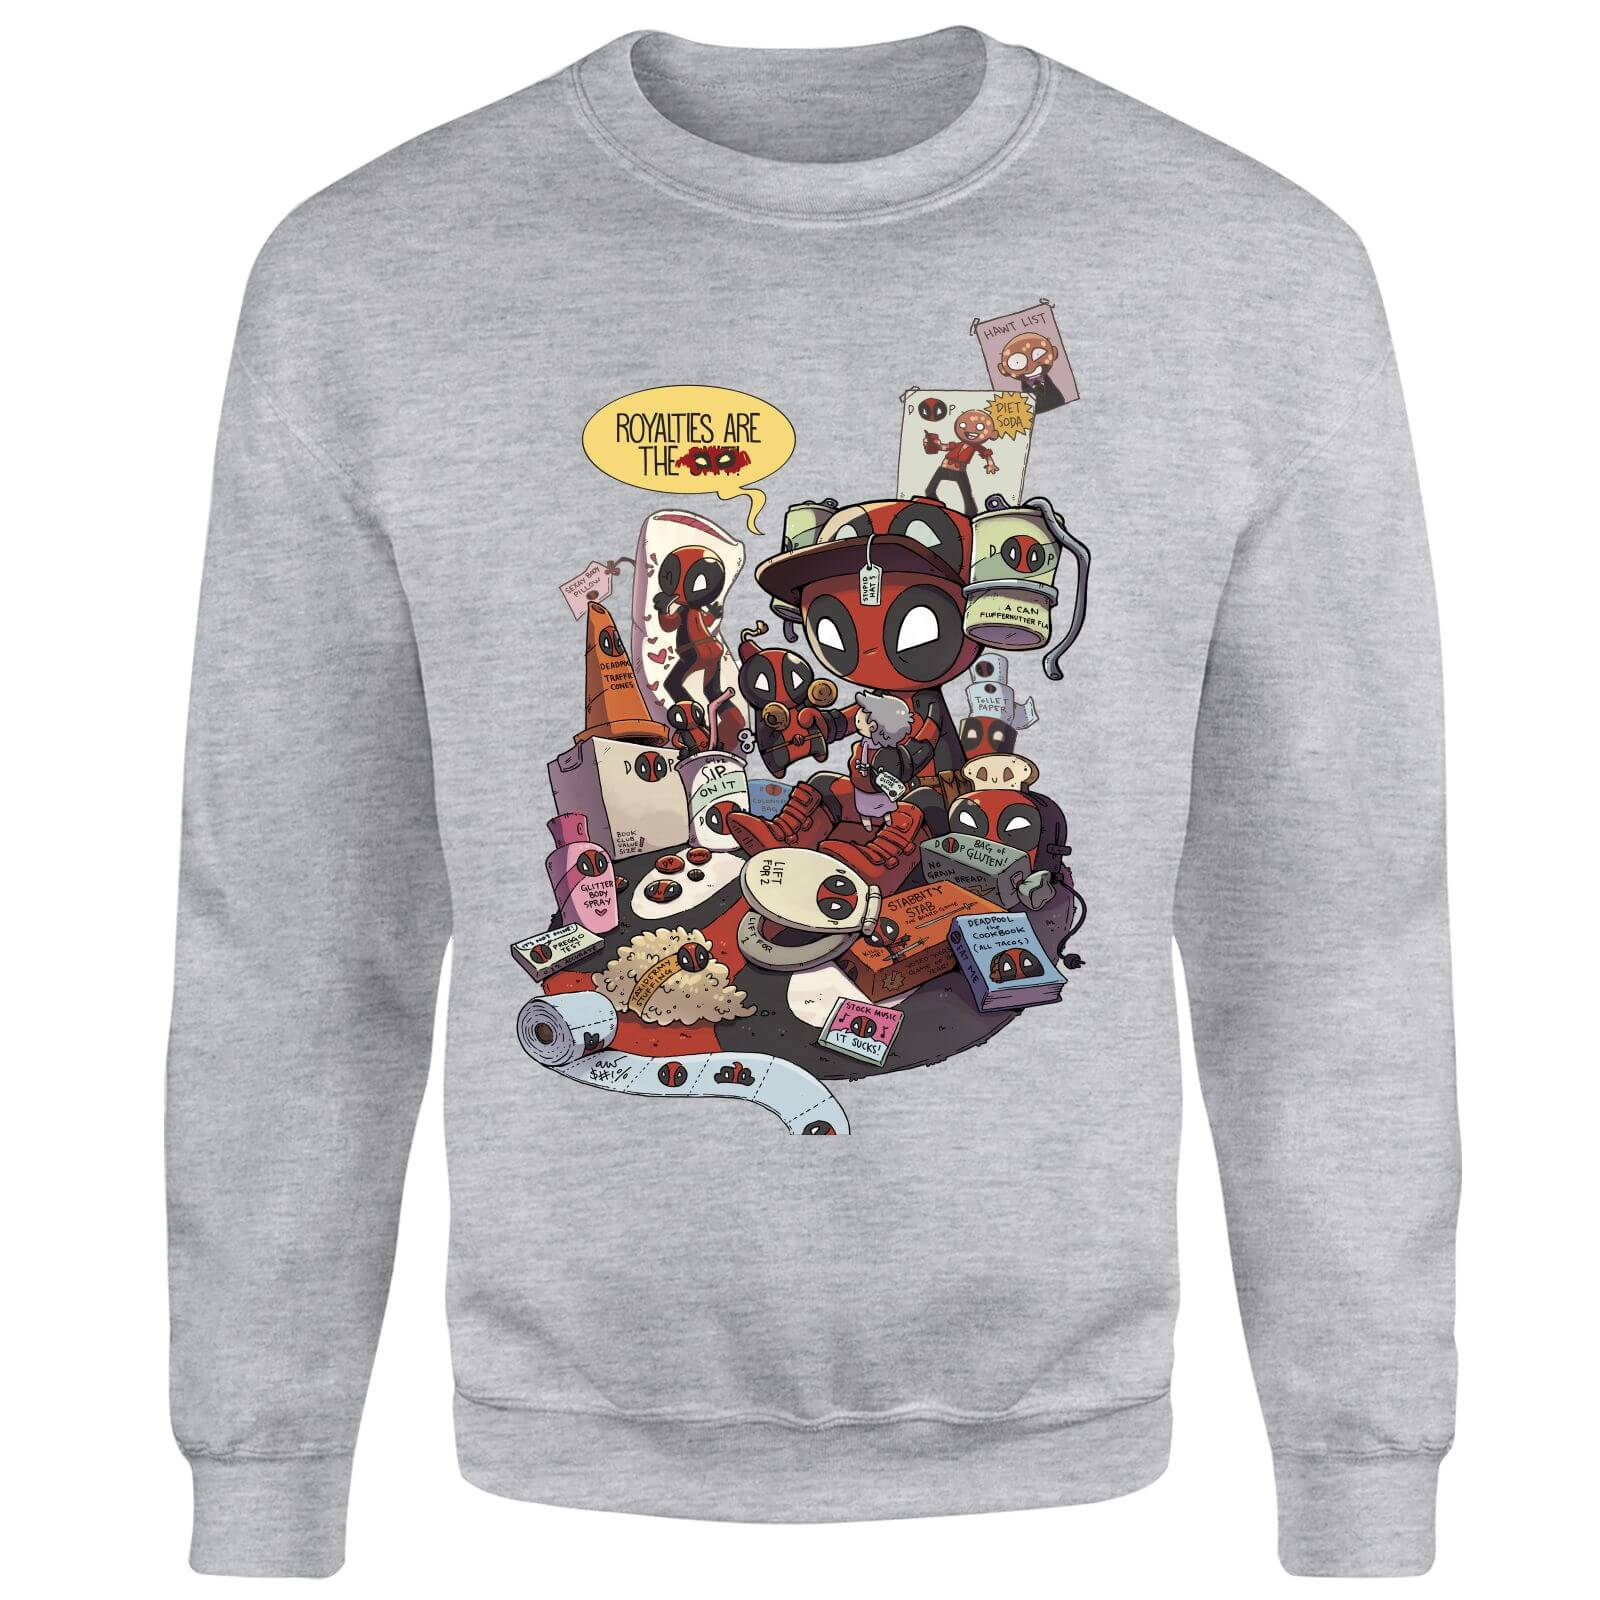 Marvel Deadpool Merchandise Royalties Sweatshirt - Grey